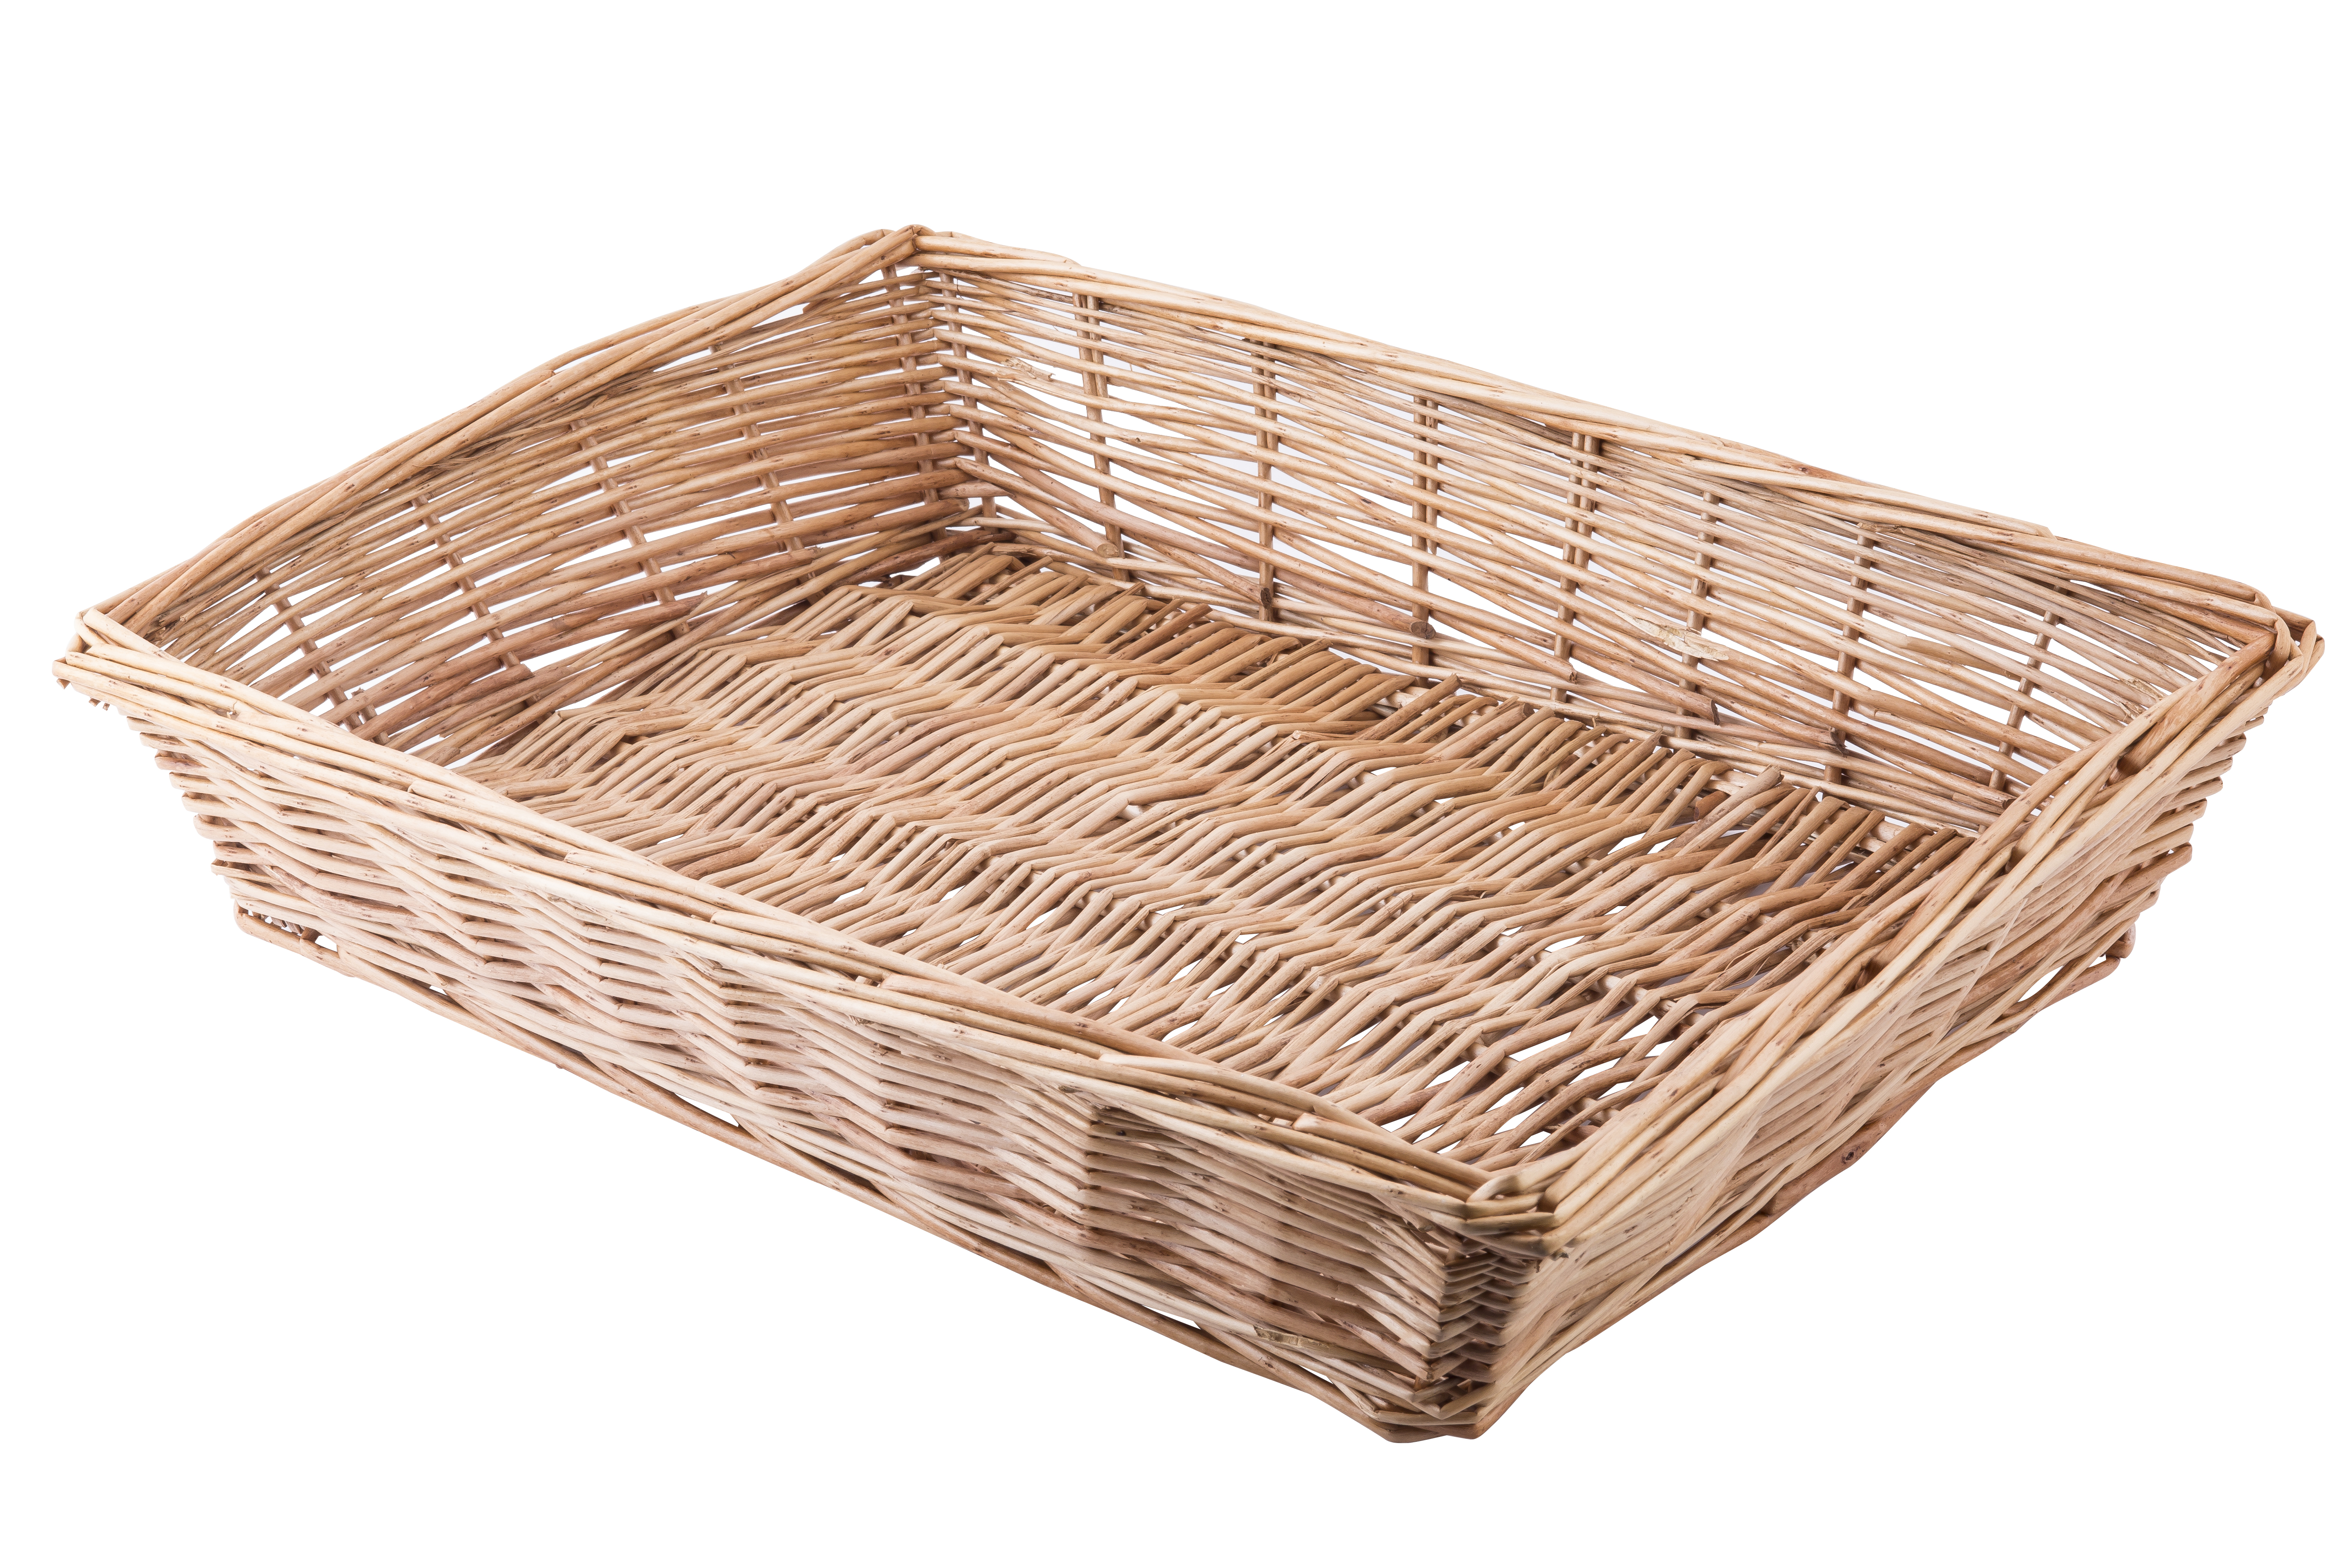 TableCraft Products 1692 hand woven baskets